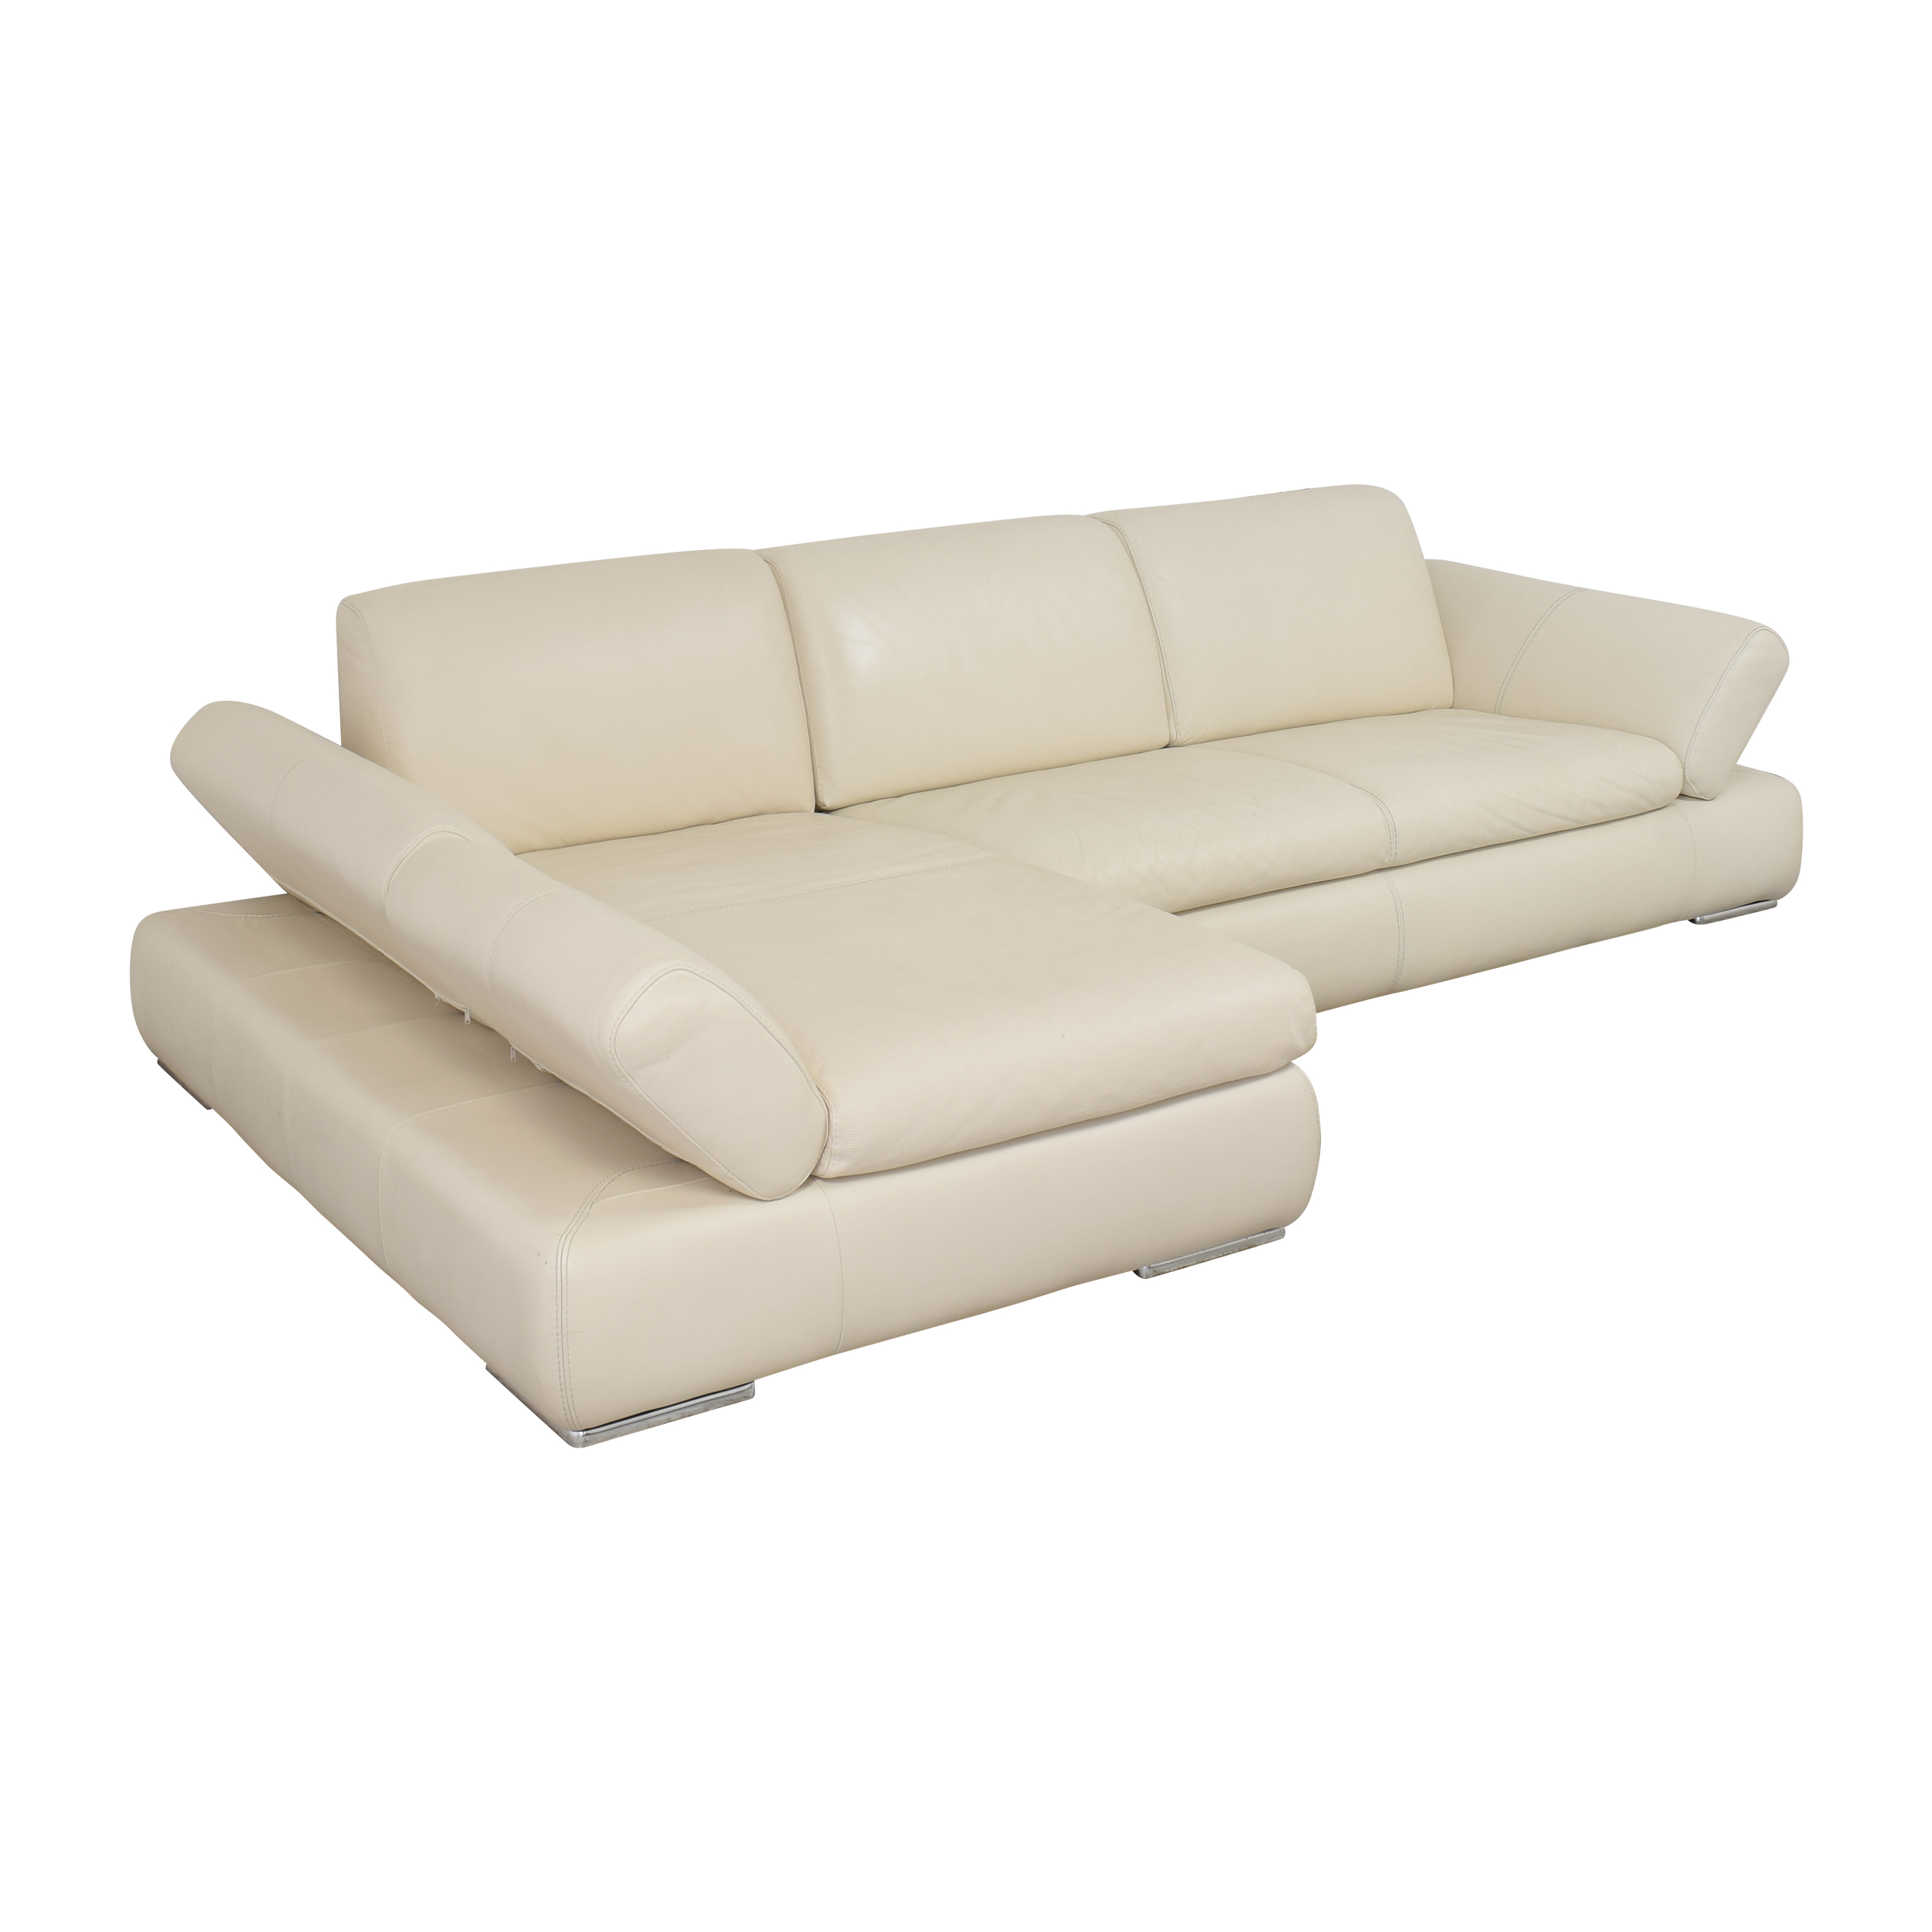 Bloomingdale's Bloomingdale's Sectional Sofa with Chaise used